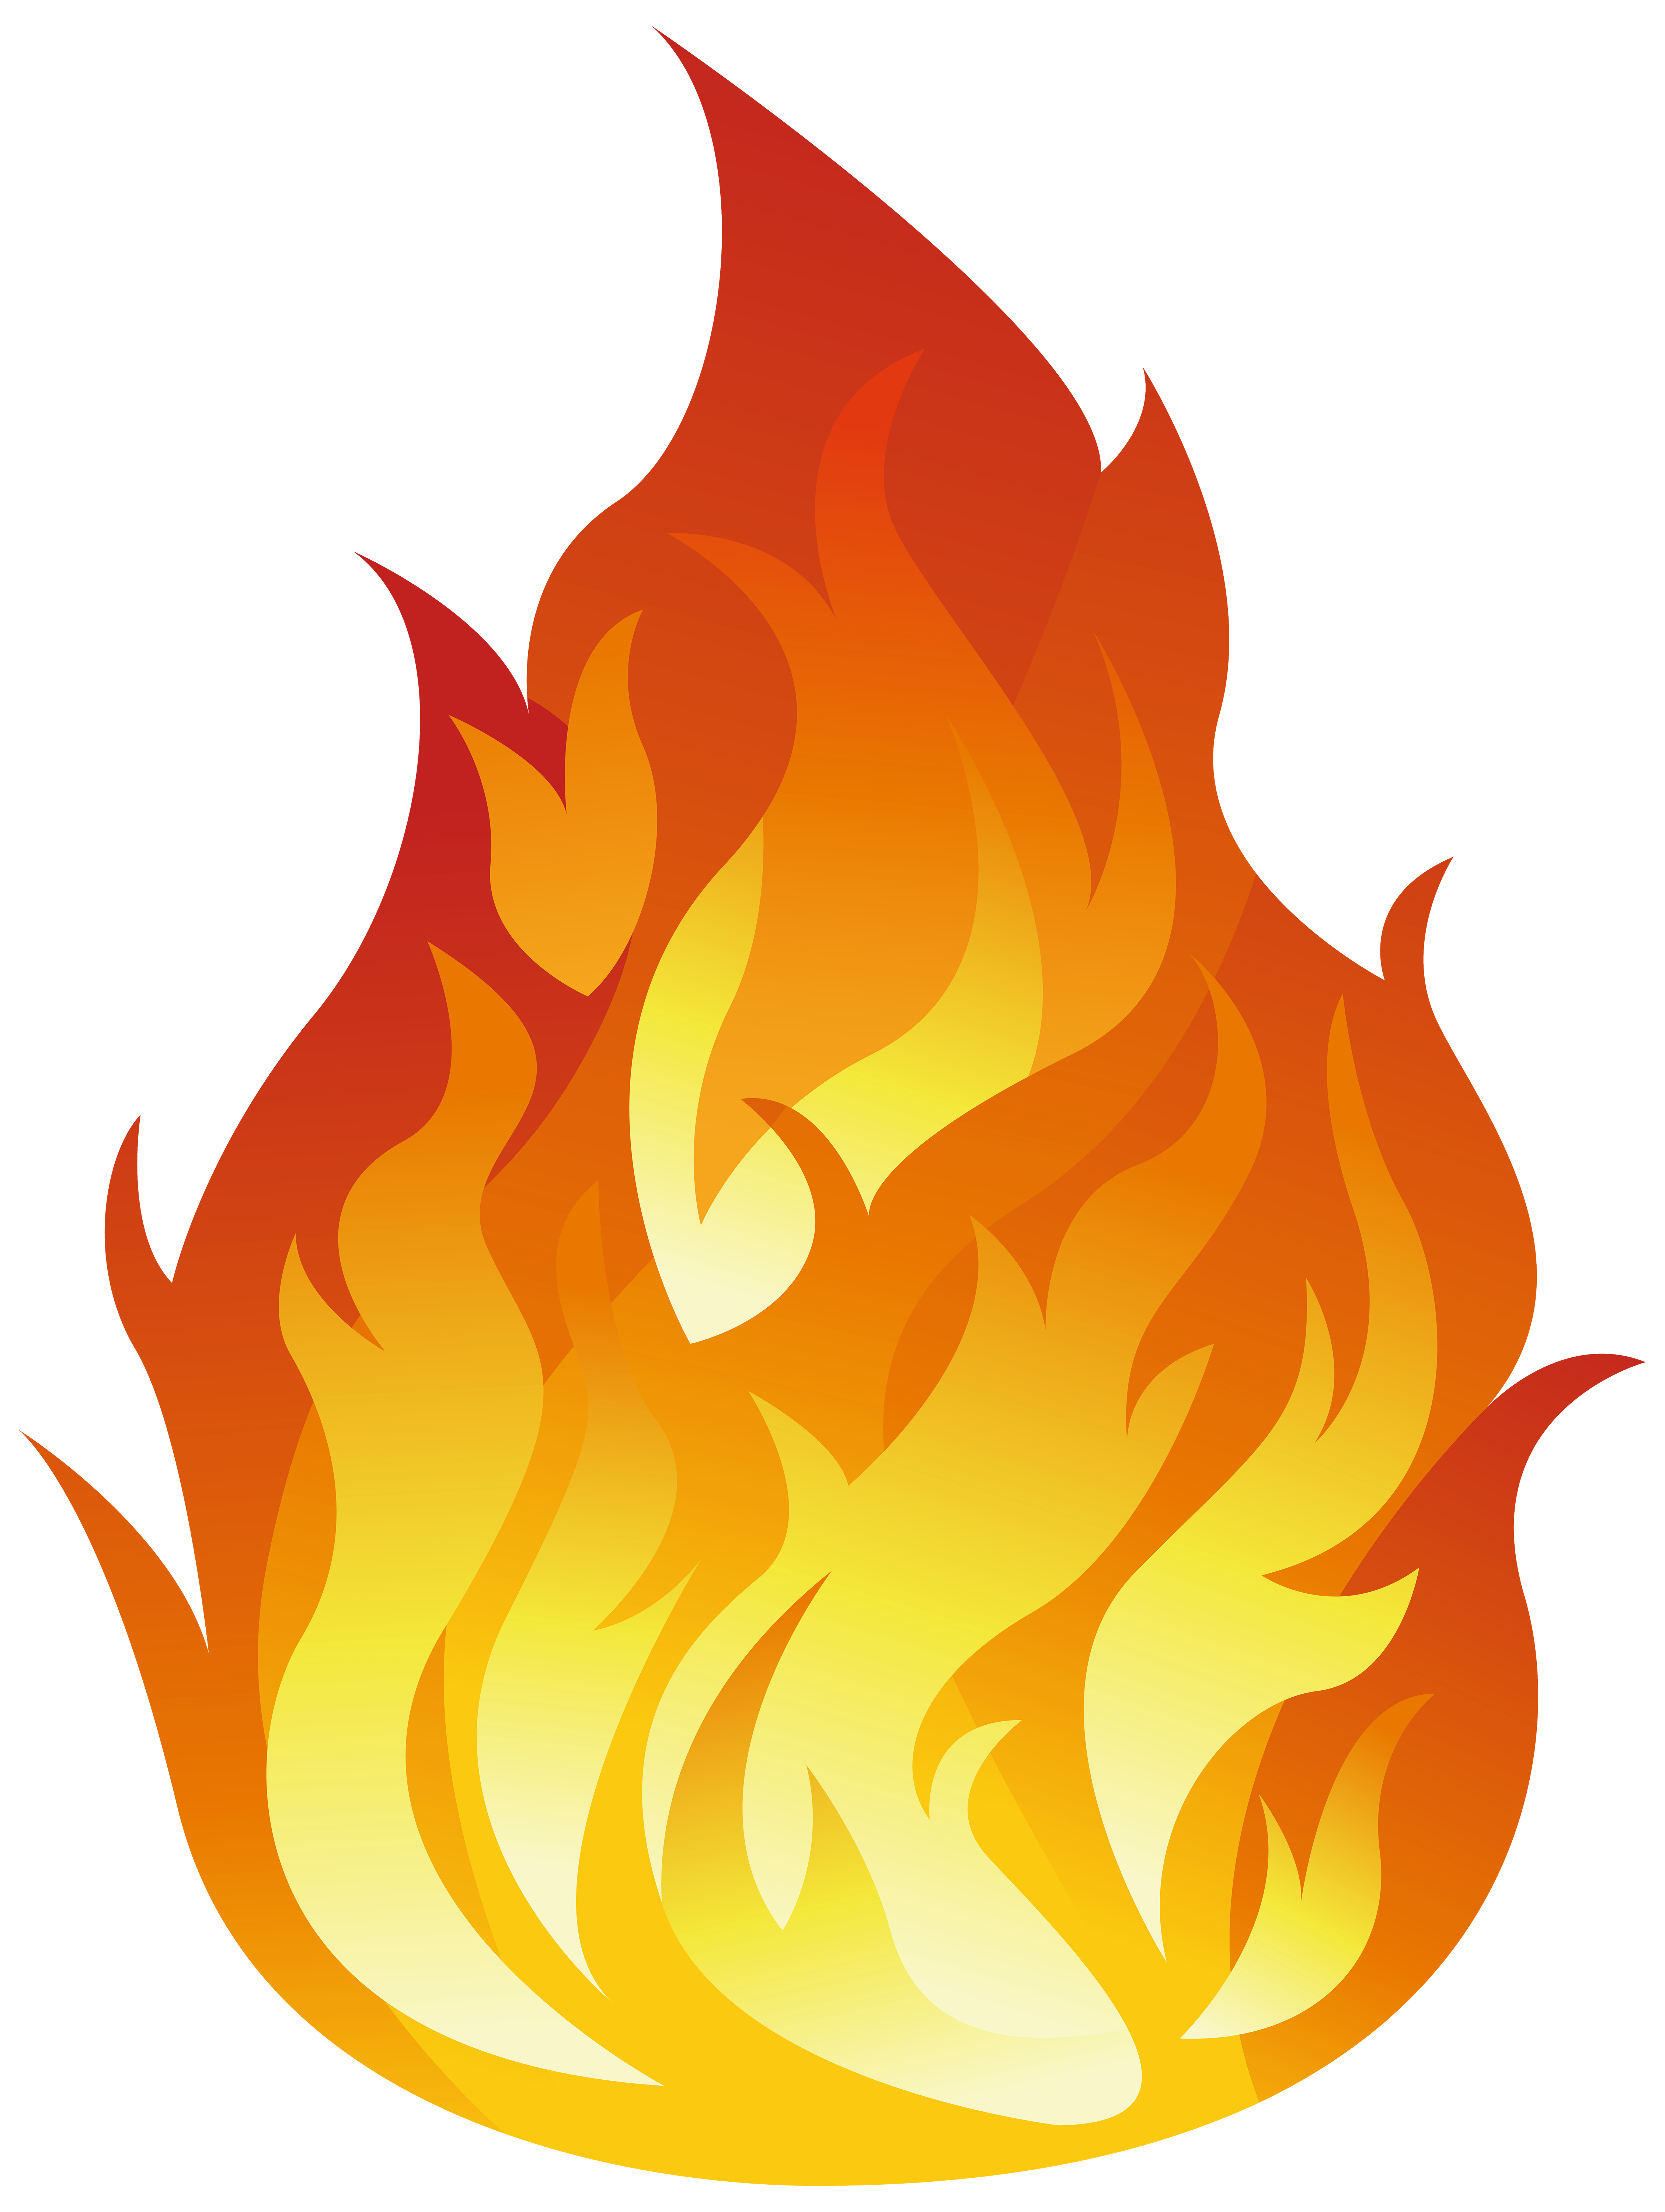 Free house fire clipart svg free library Clipart Fire at GetDrawings.com | Free for personal use Clipart Fire ... svg free library